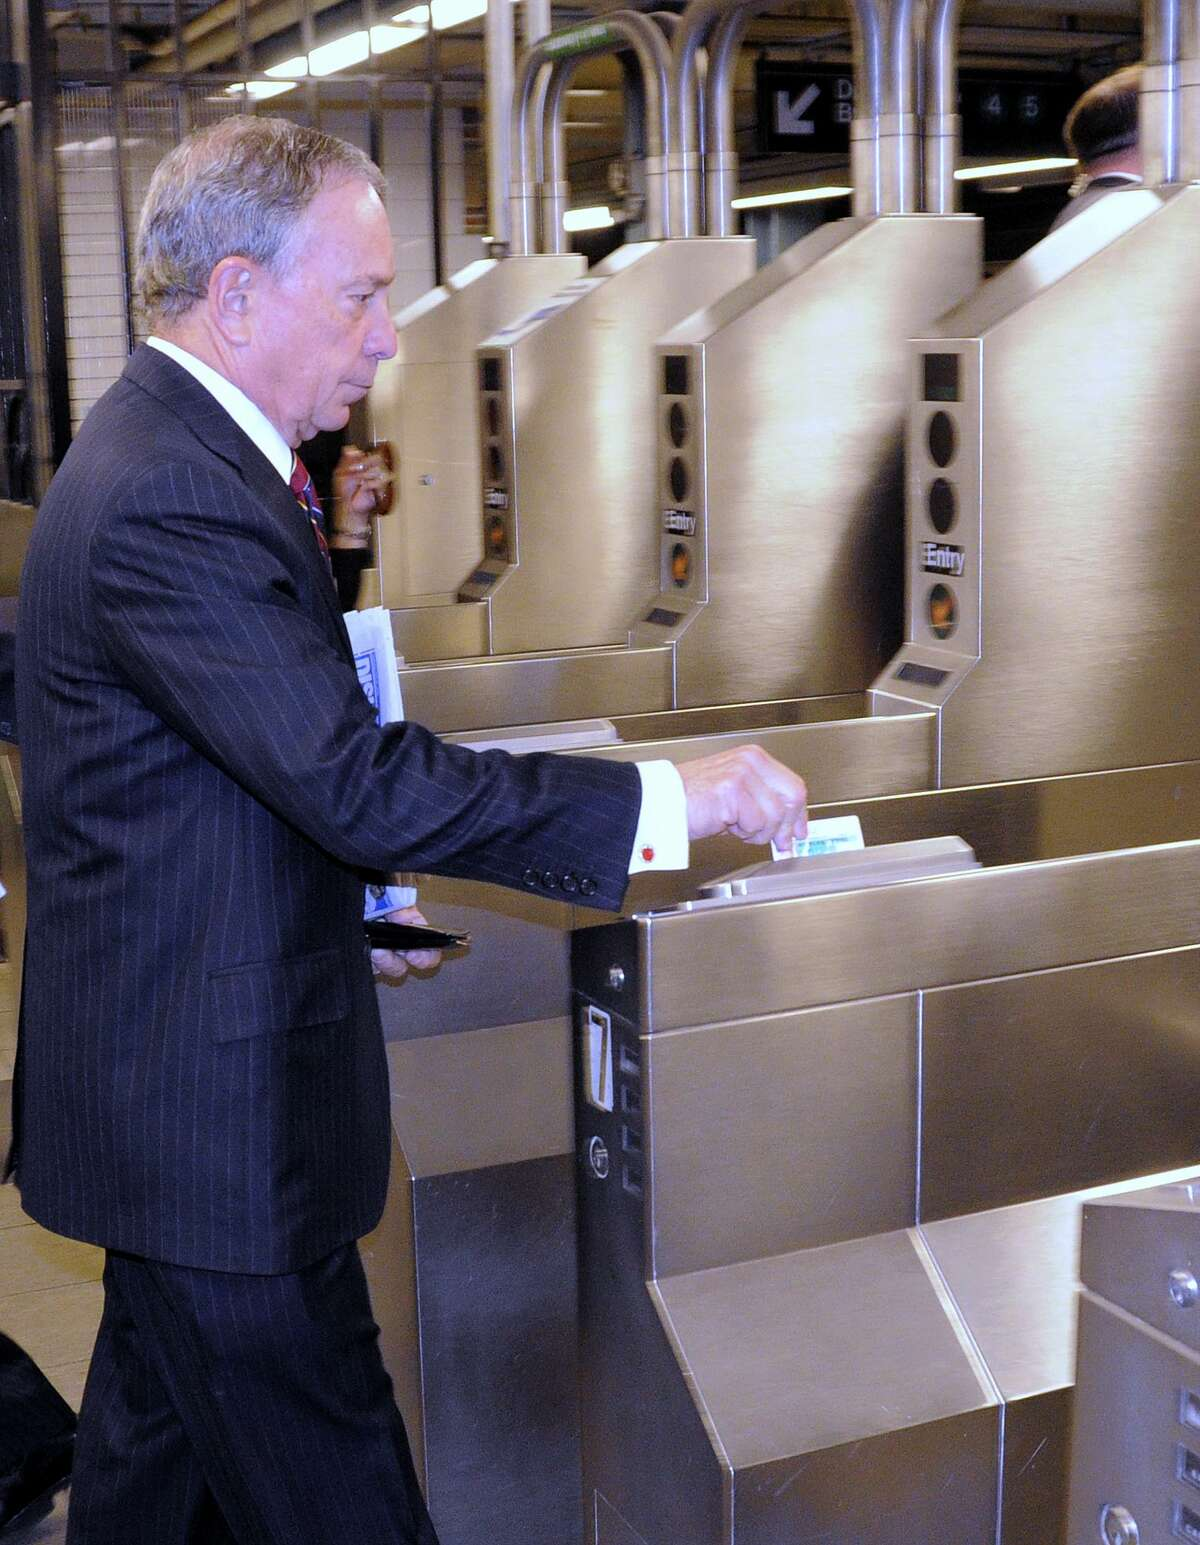 FILE - New York city Mayor Michael Bloomberg swipes into the NYC subway in 2009.